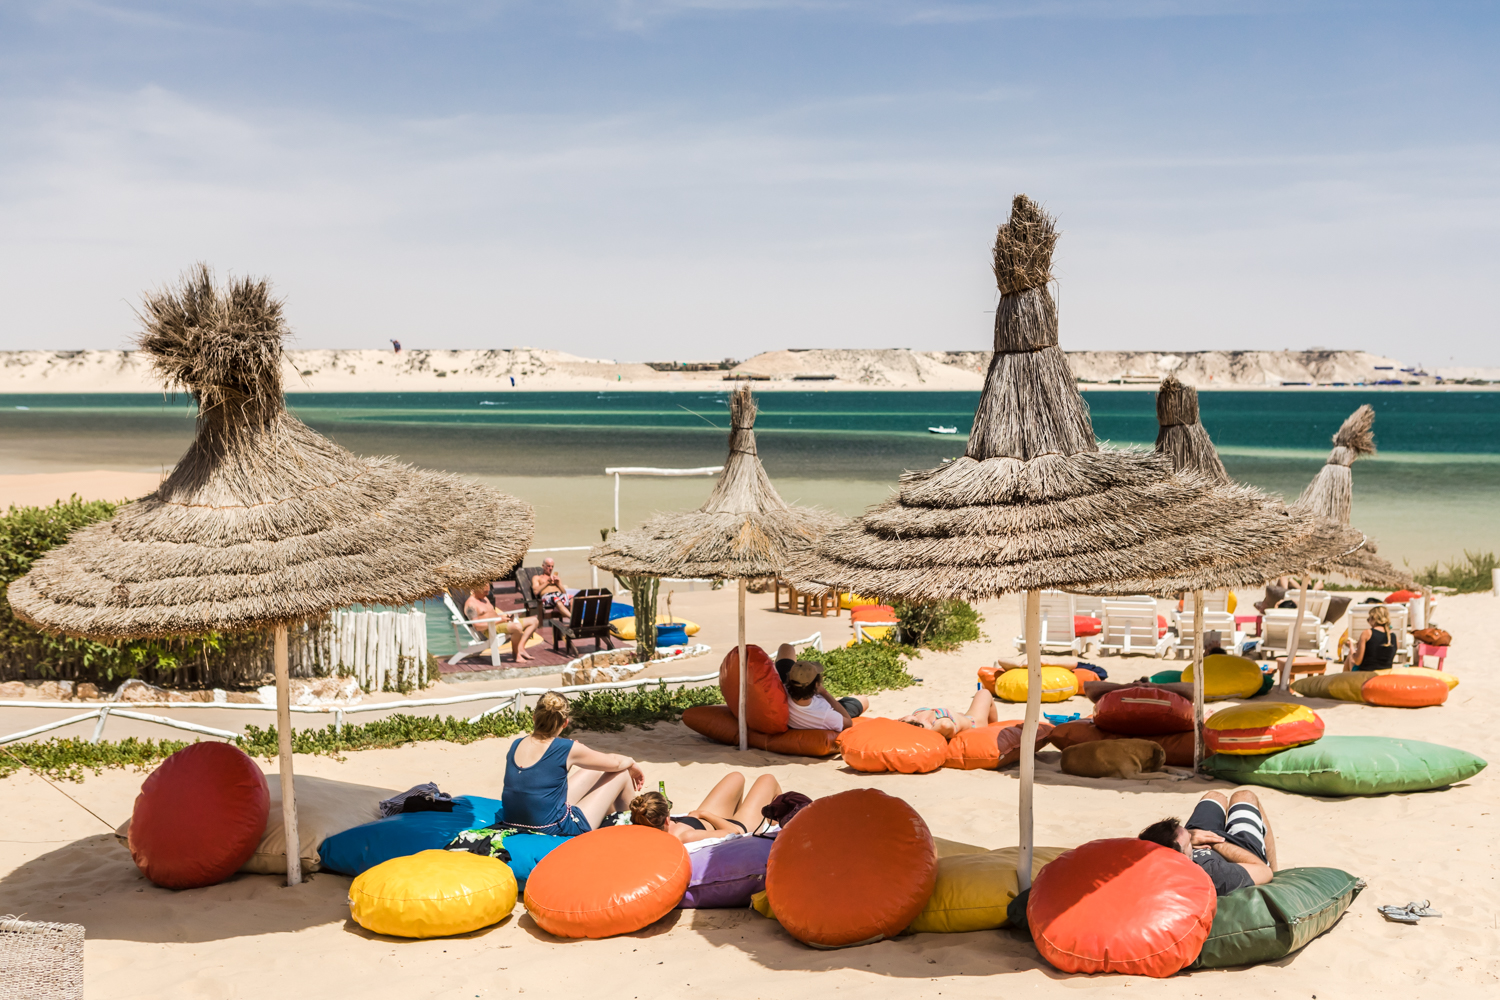 Dakhla Spirit Lagoon Hotel and Camp